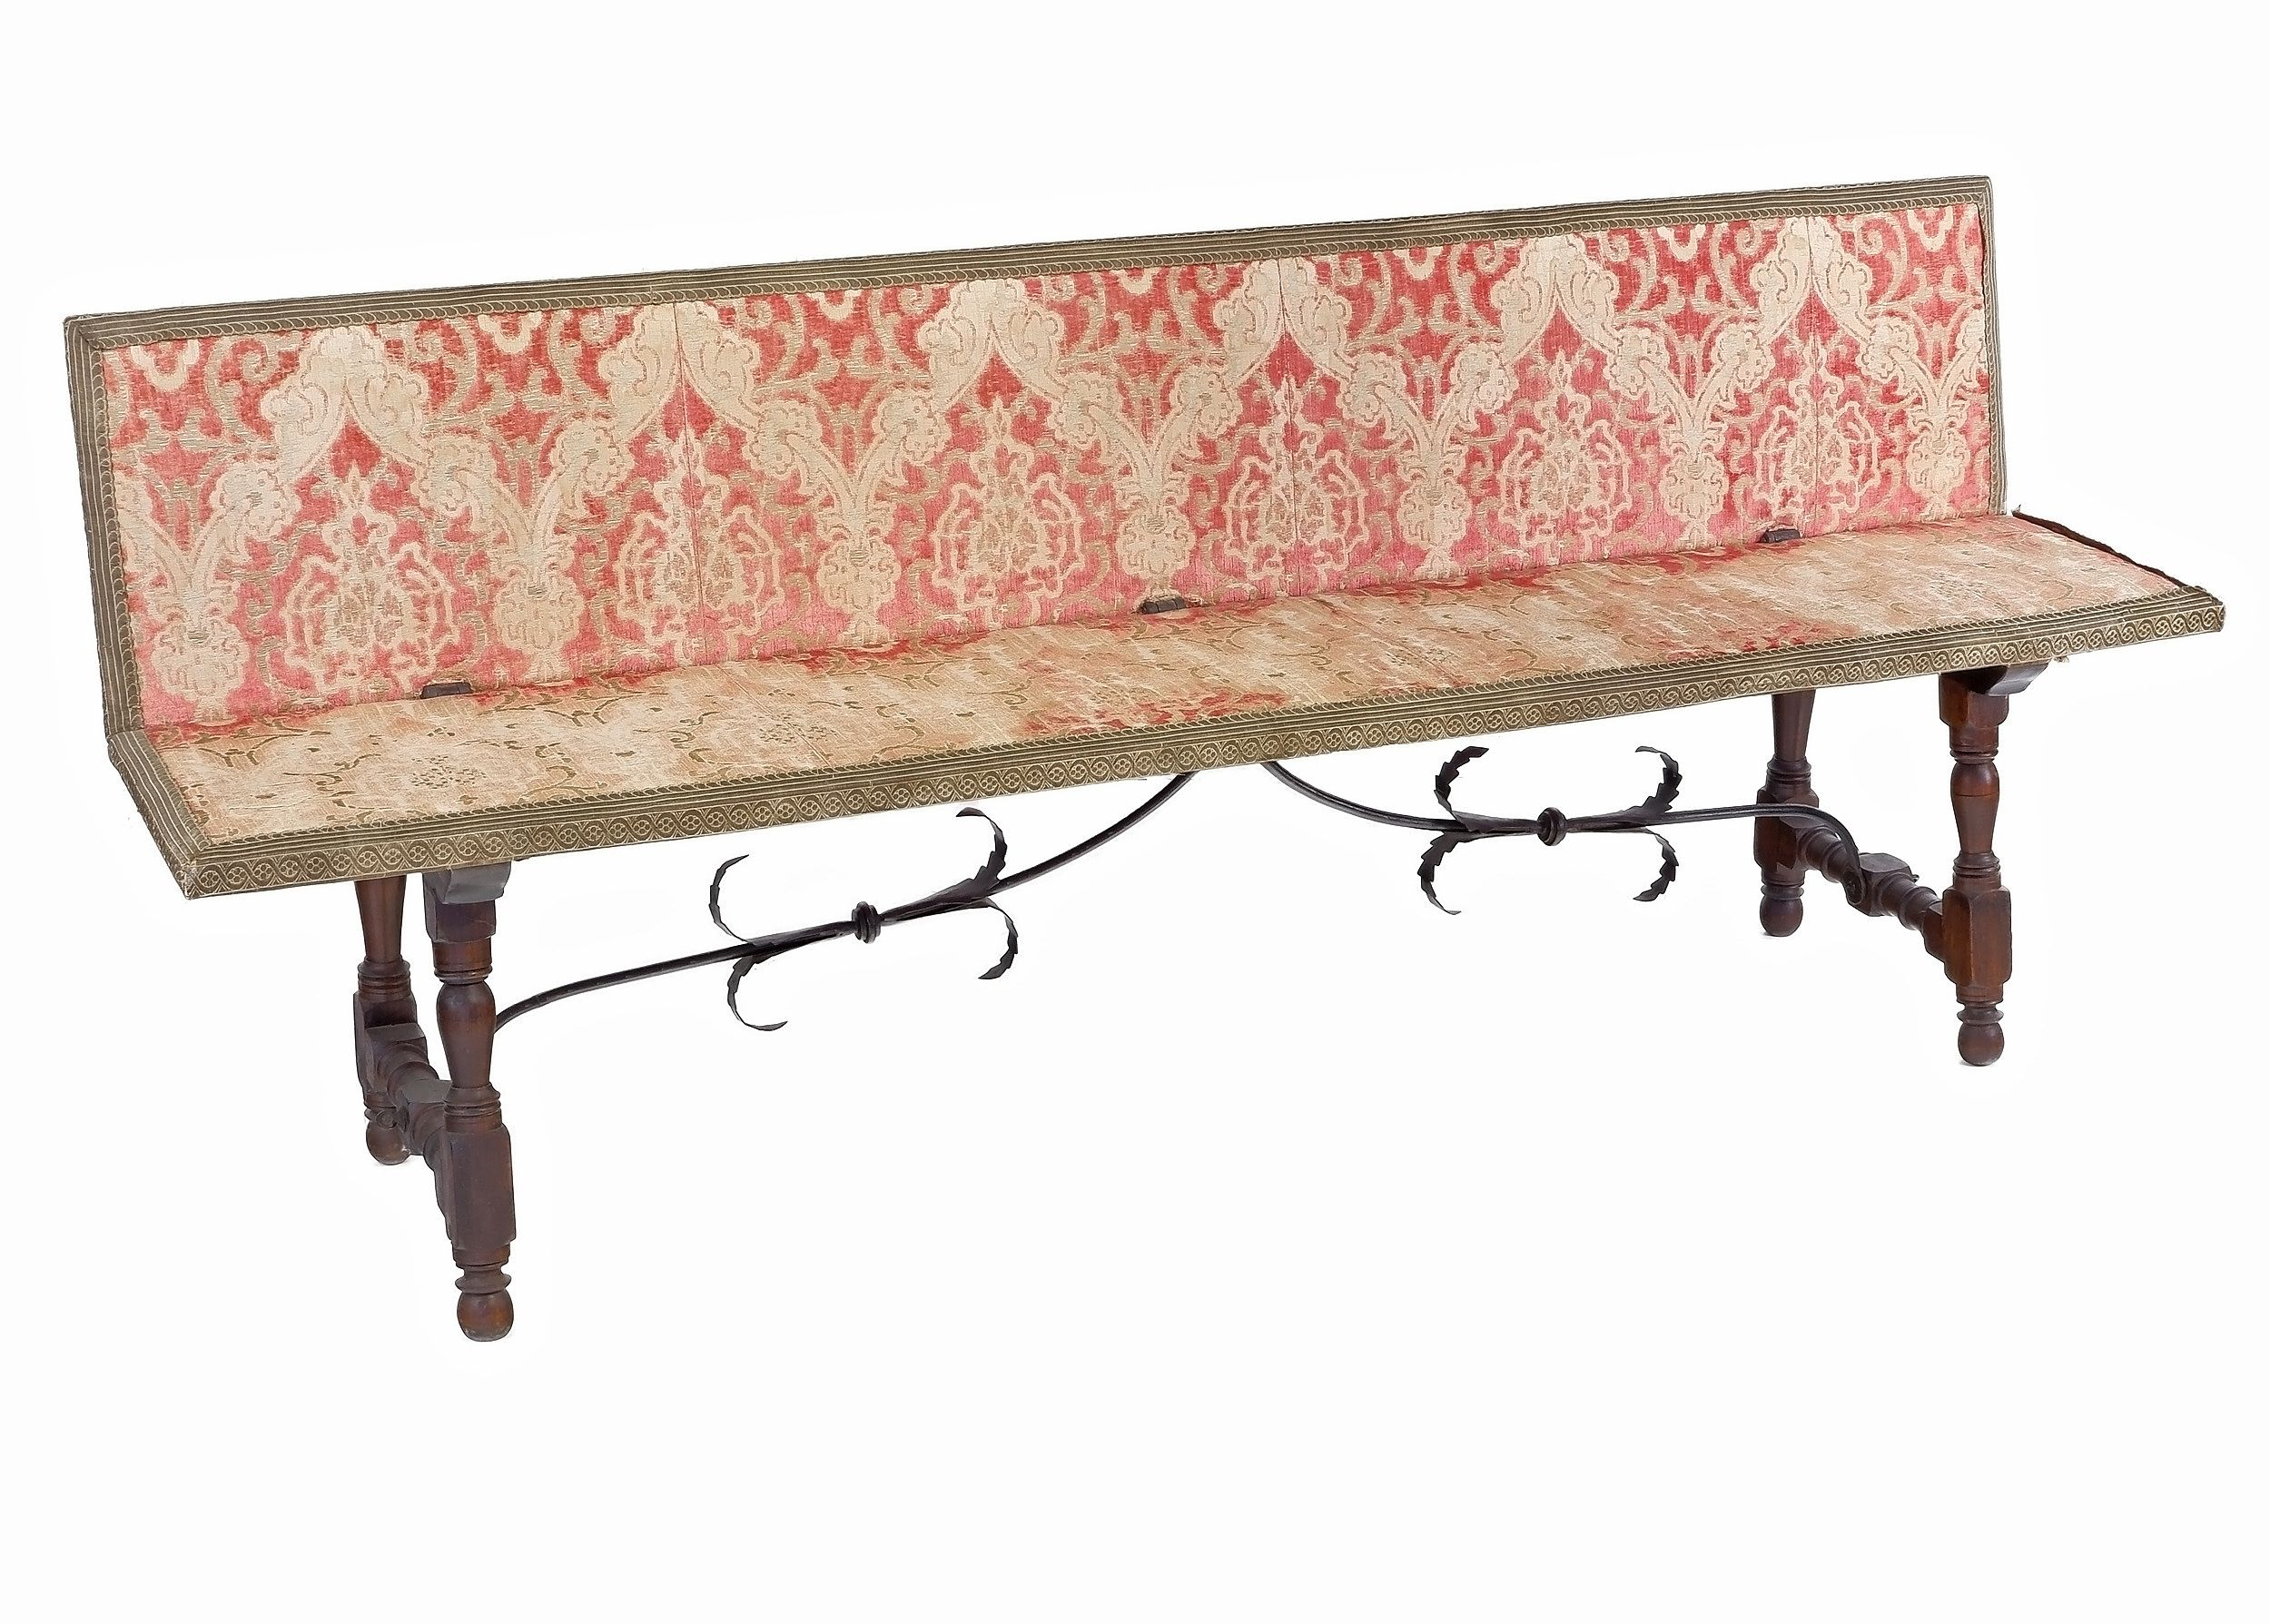 'Antique Spanish Bench with Cut Velvet Upholstery and Iron Stretcher'